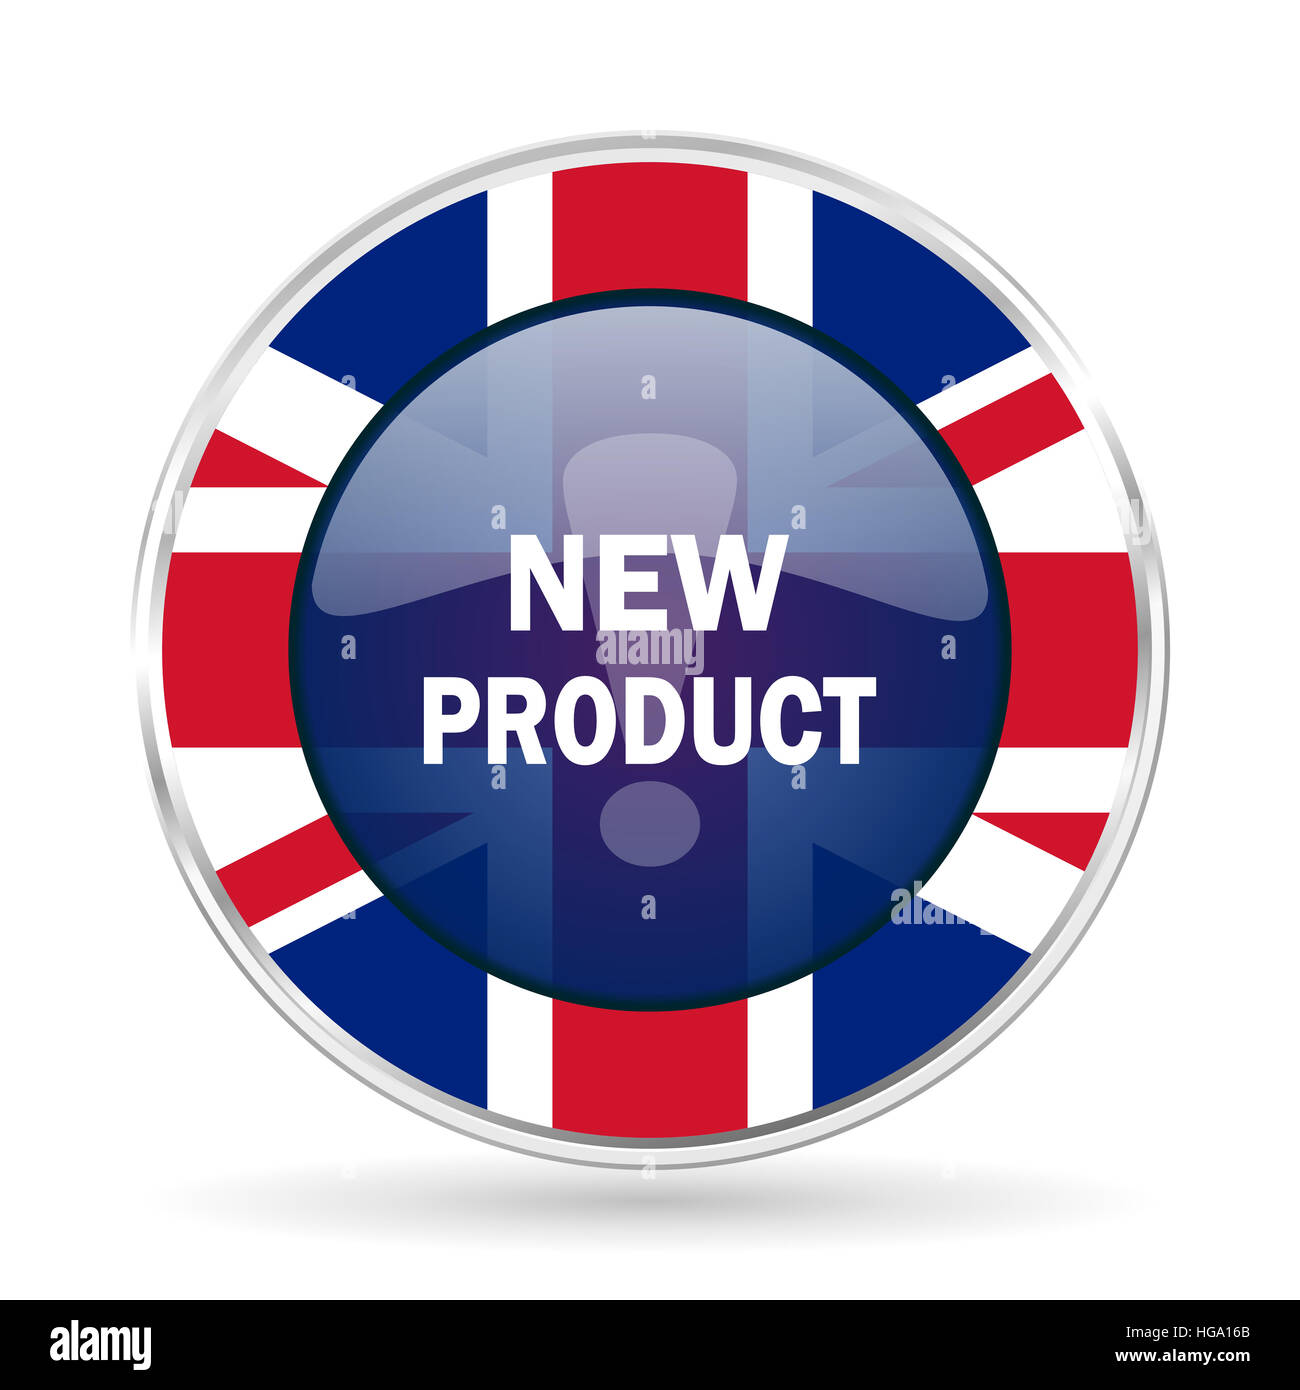 new product british design icon - round silver metallic border button with Great Britain flag - Stock Image